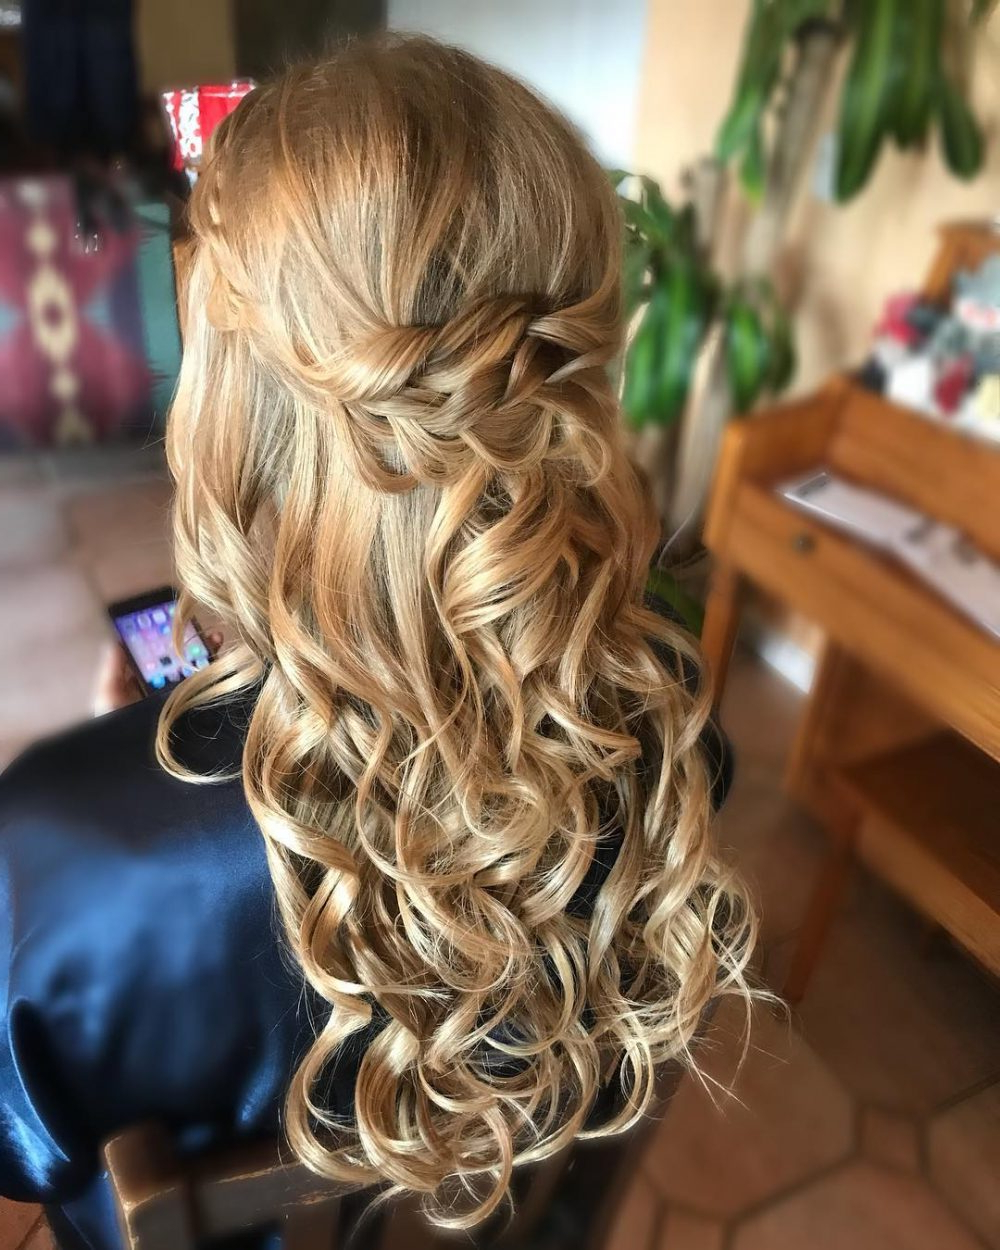 Famous Wedding Semi Updo Bridal Hairstyles With Braid Throughout 24 Gorgeous Wedding Hairstyles For Long Hair In (View 7 of 20)